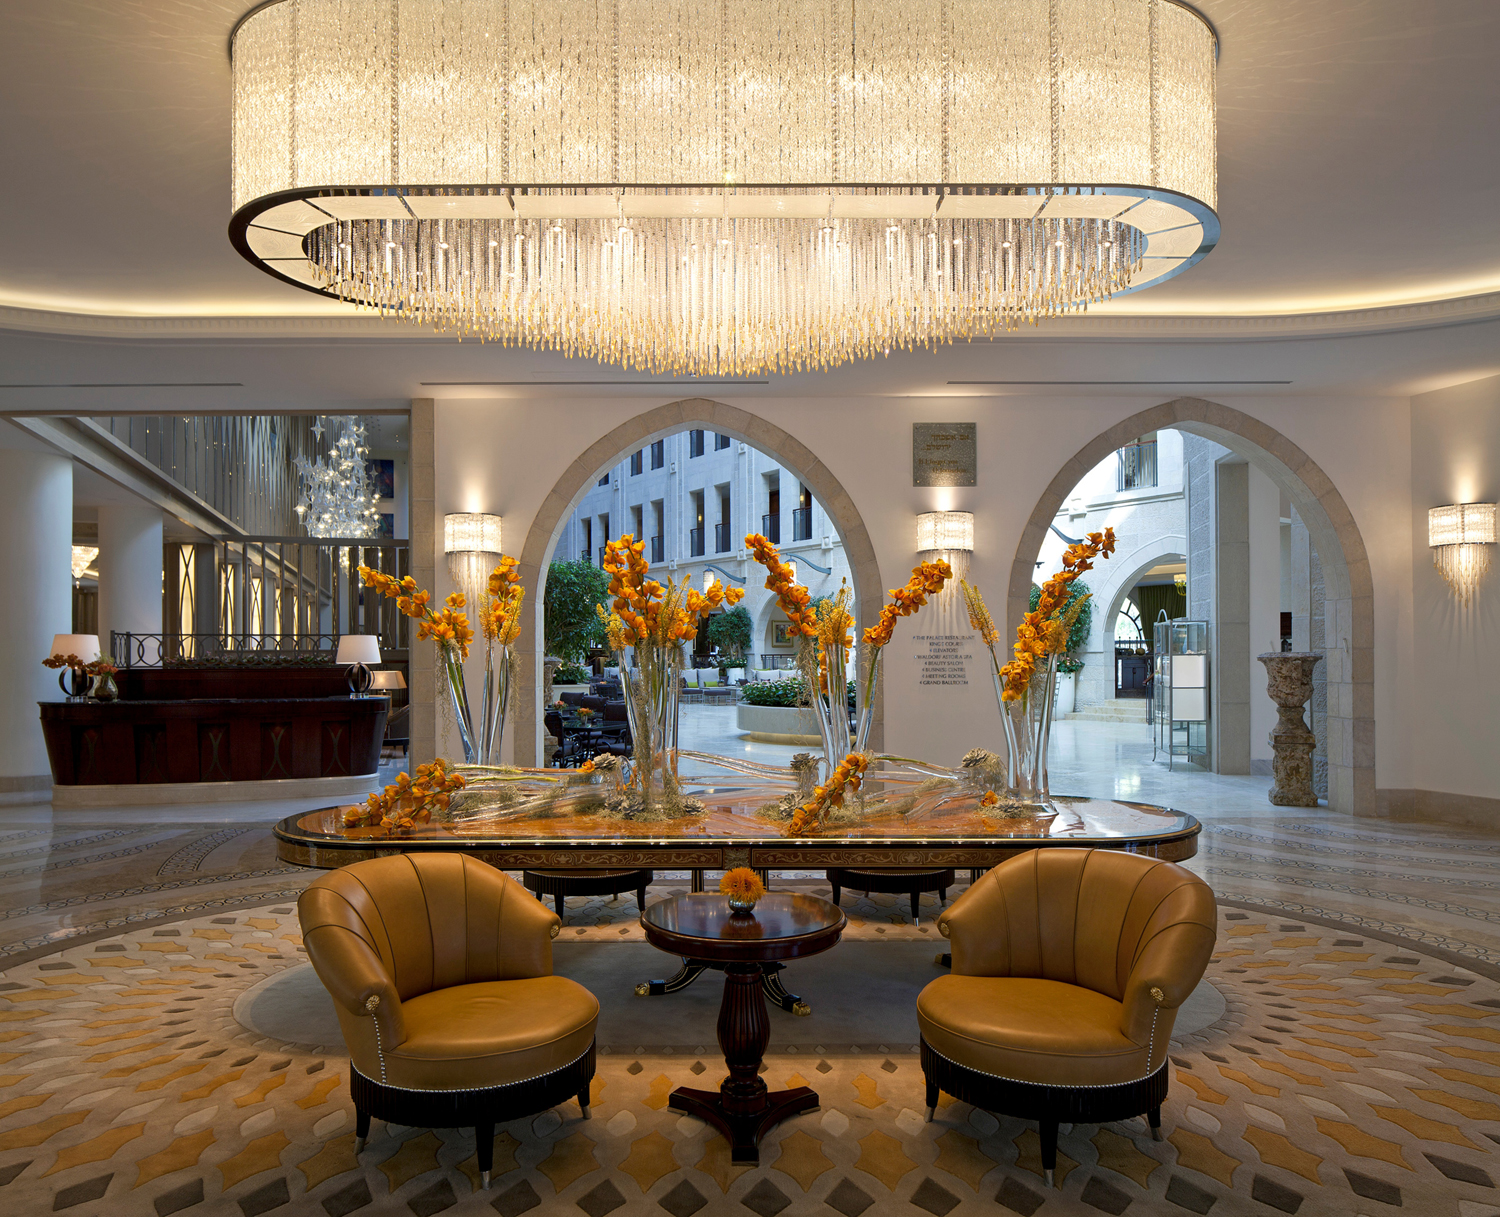 Waldorf Astoria Jerusalem Hotel A Mix of Contemporary Elegance and Eclectic Architecture